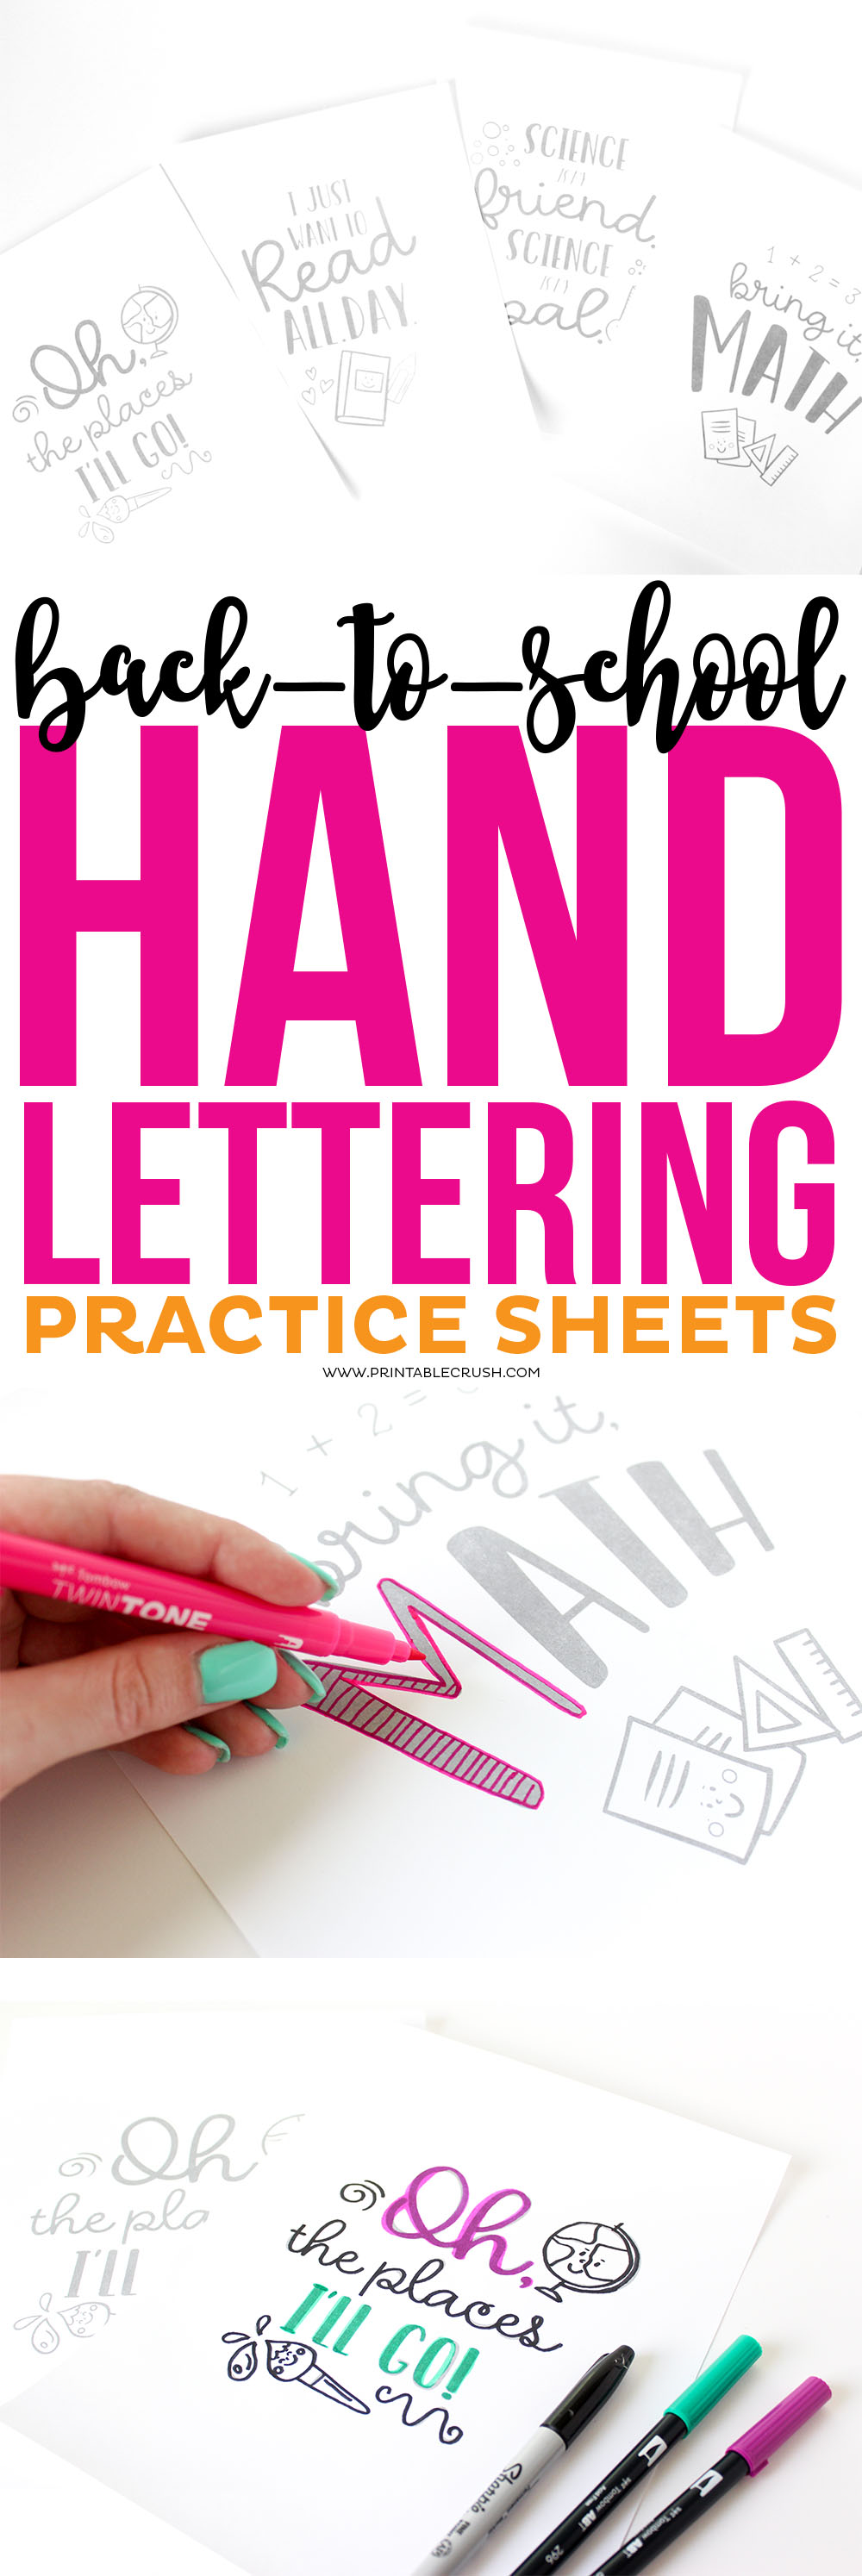 These adorable Back to School Hand Lettering Practice Sheets include 4 designs with hand lettered designs and cute illustrations!